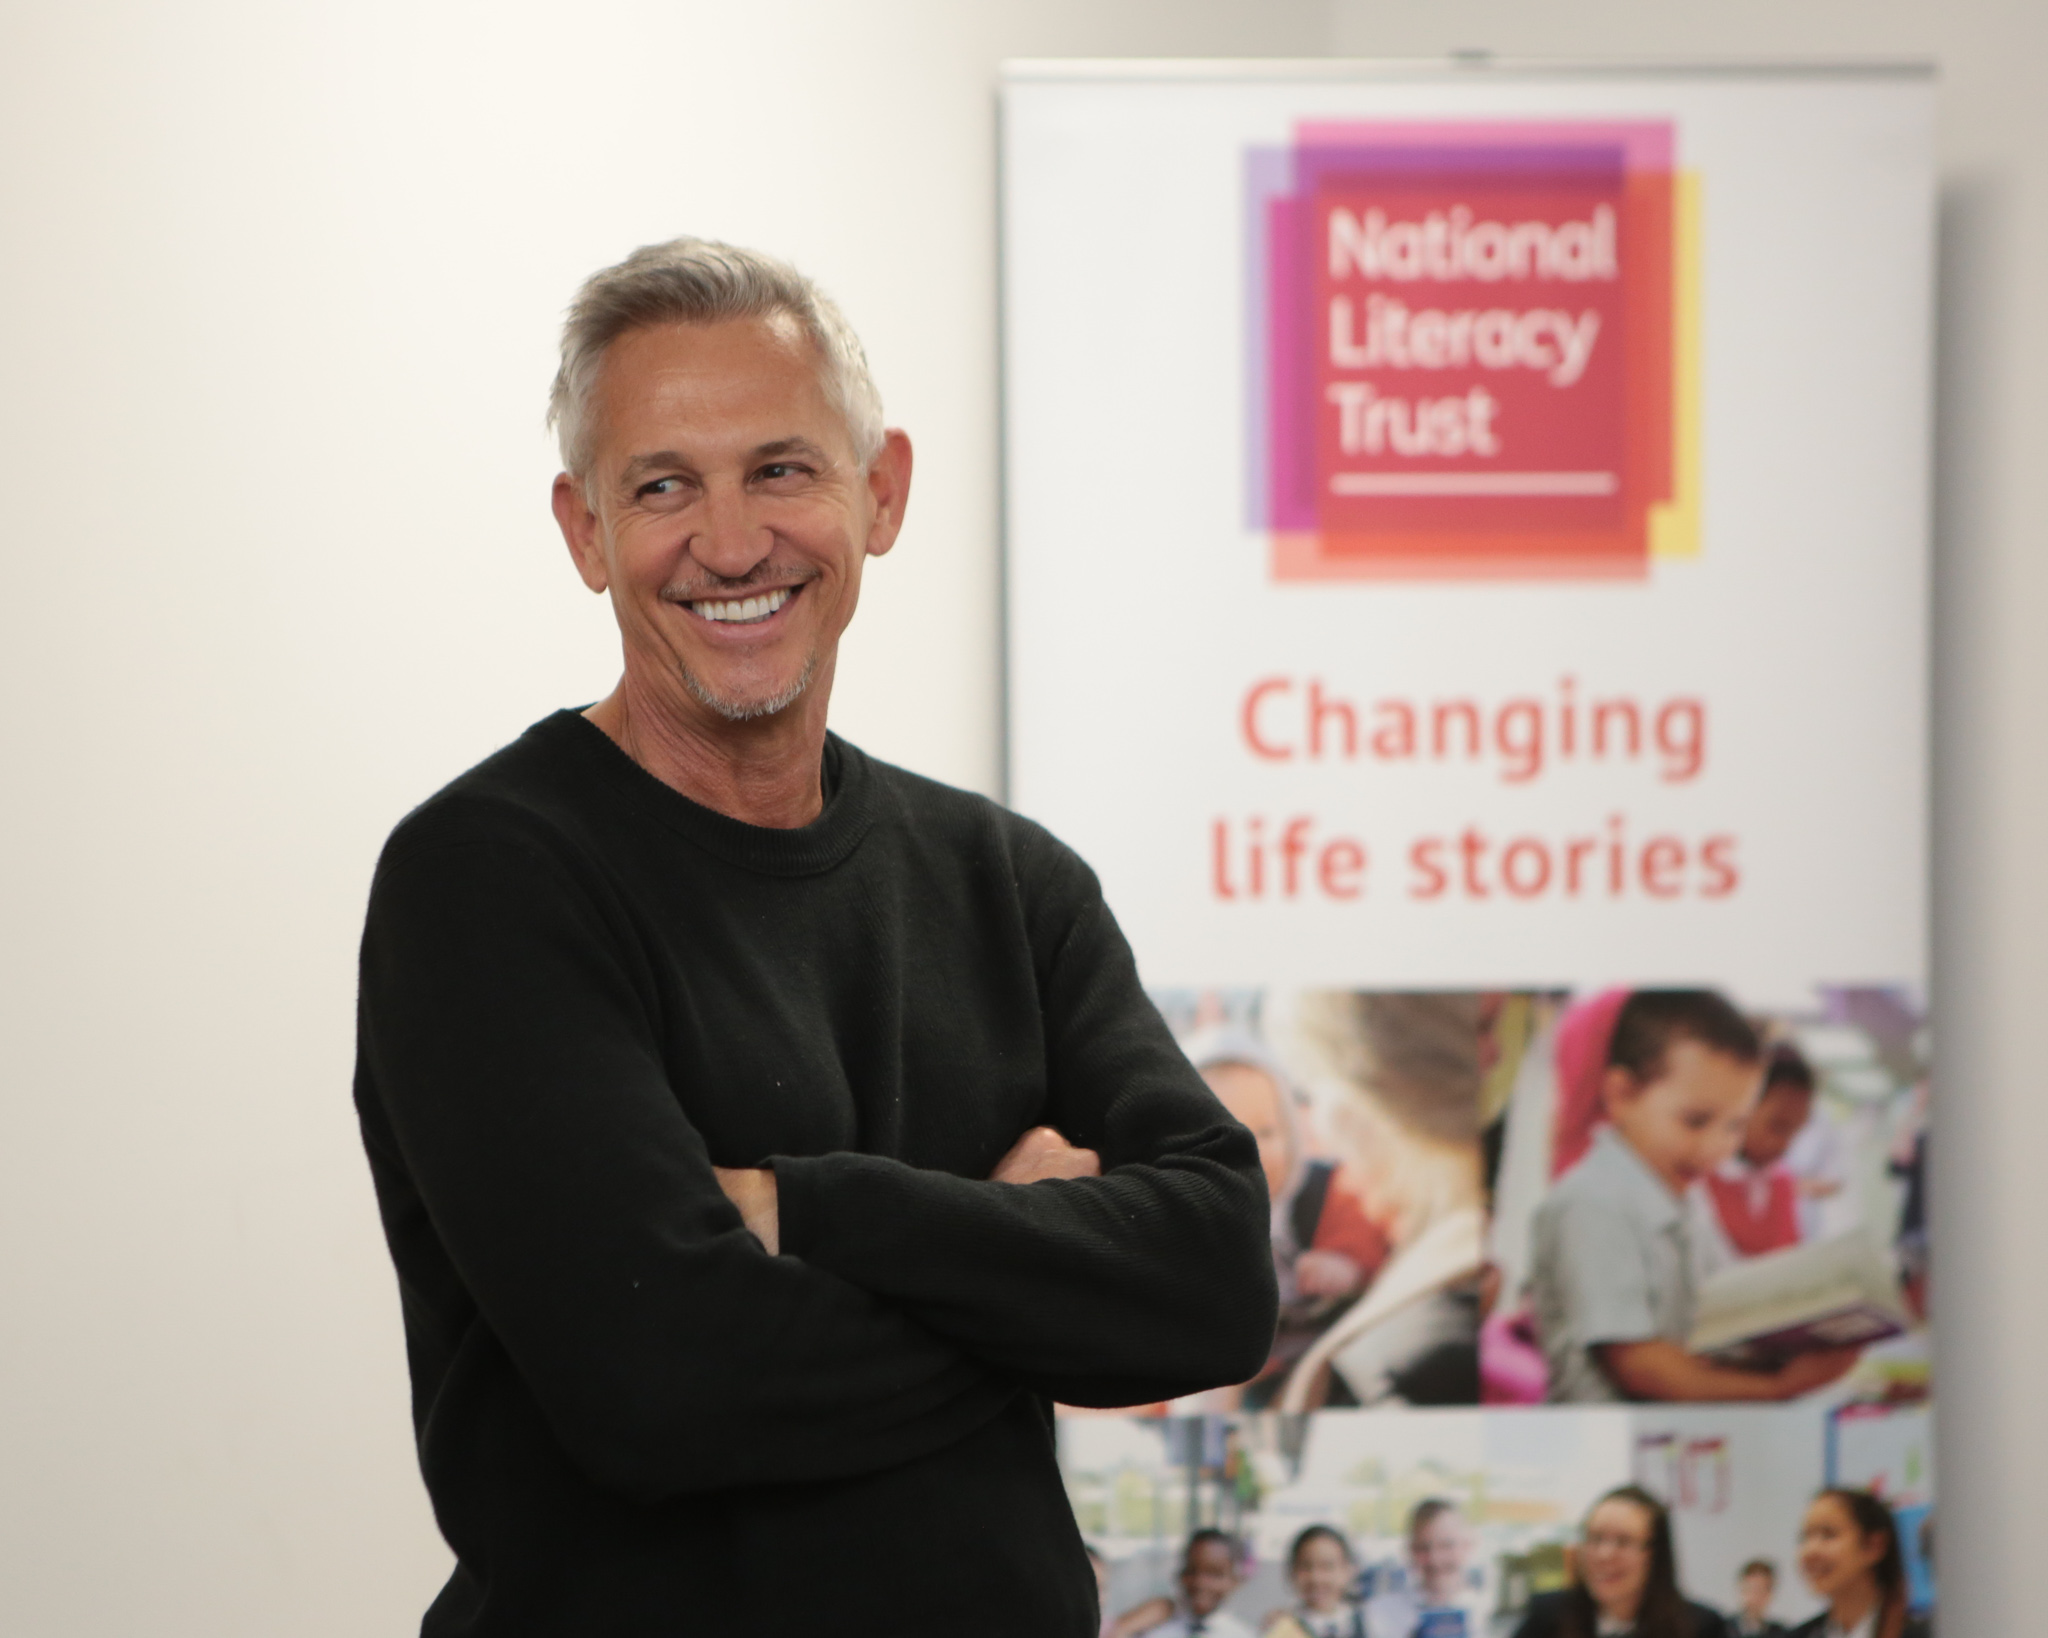 Gary Lineker at the Sports Book Awards event for The National Literacy Trust